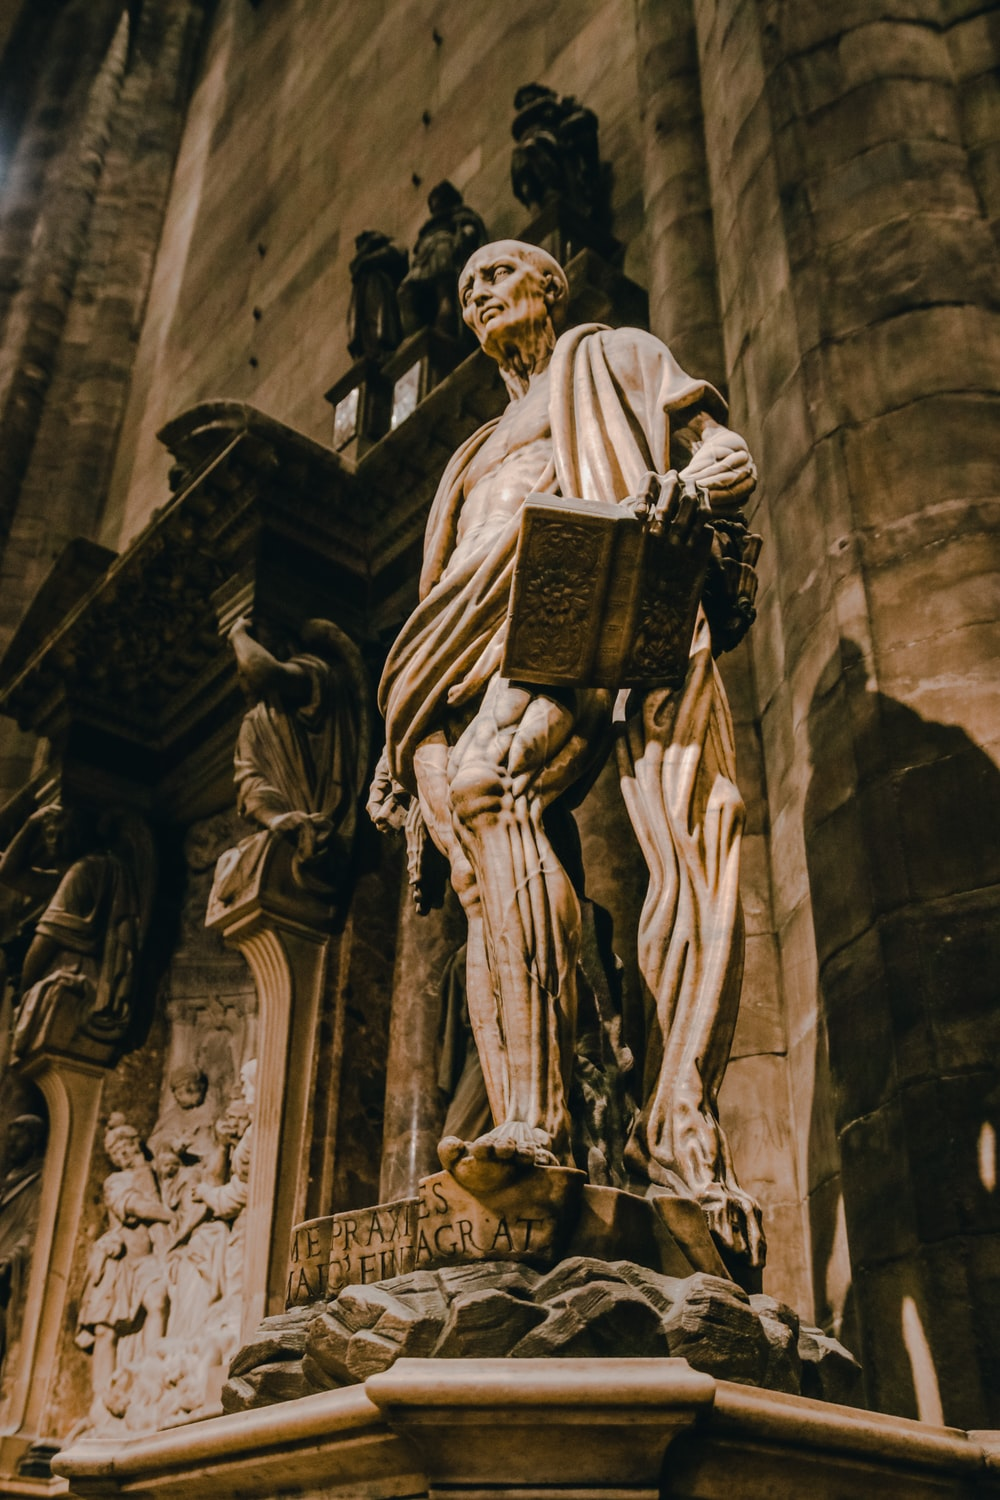 low-angle photography of man carrying a book statue